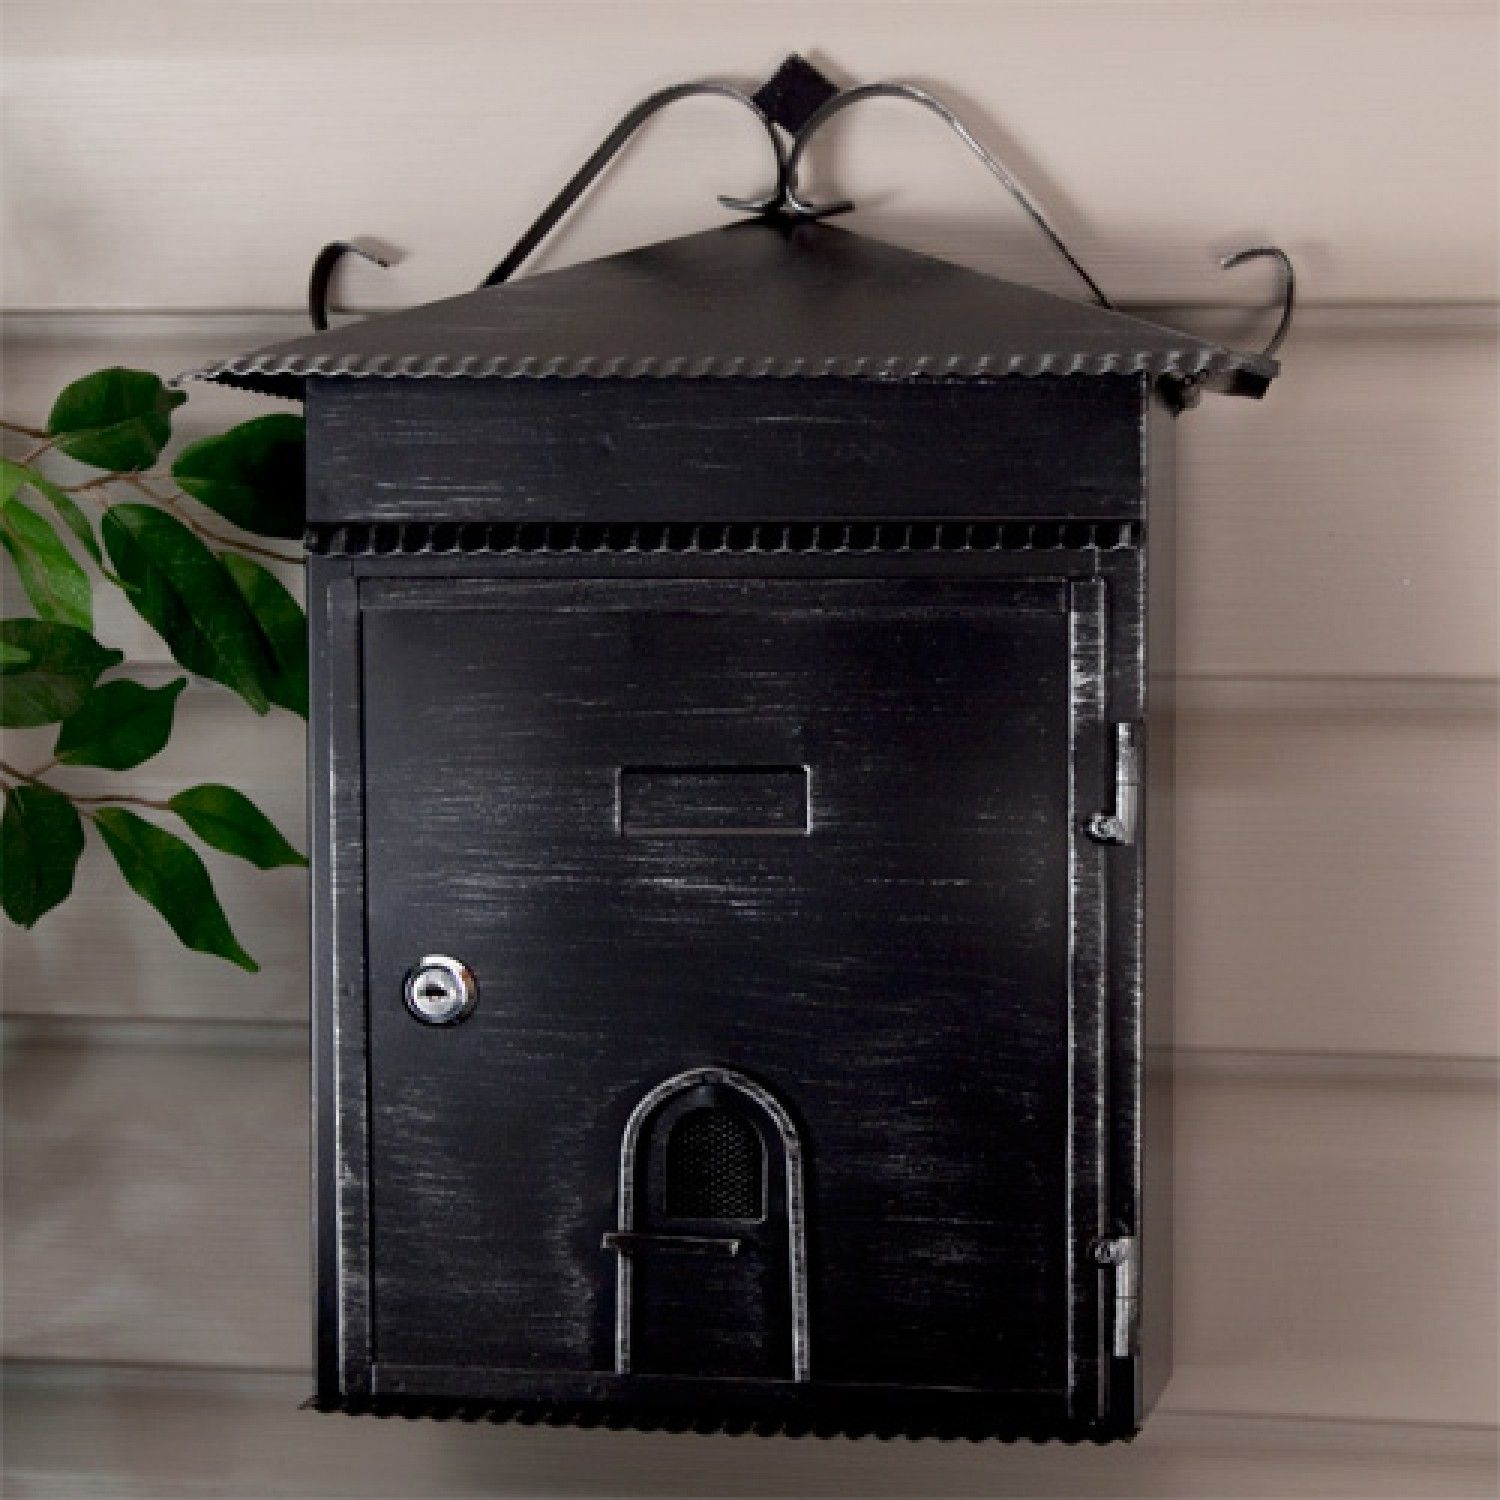 Good Rustico Wall Mount Locking Mailbox   Aged Black Powder Coat   Mailboxes And  Slots   Outdoor